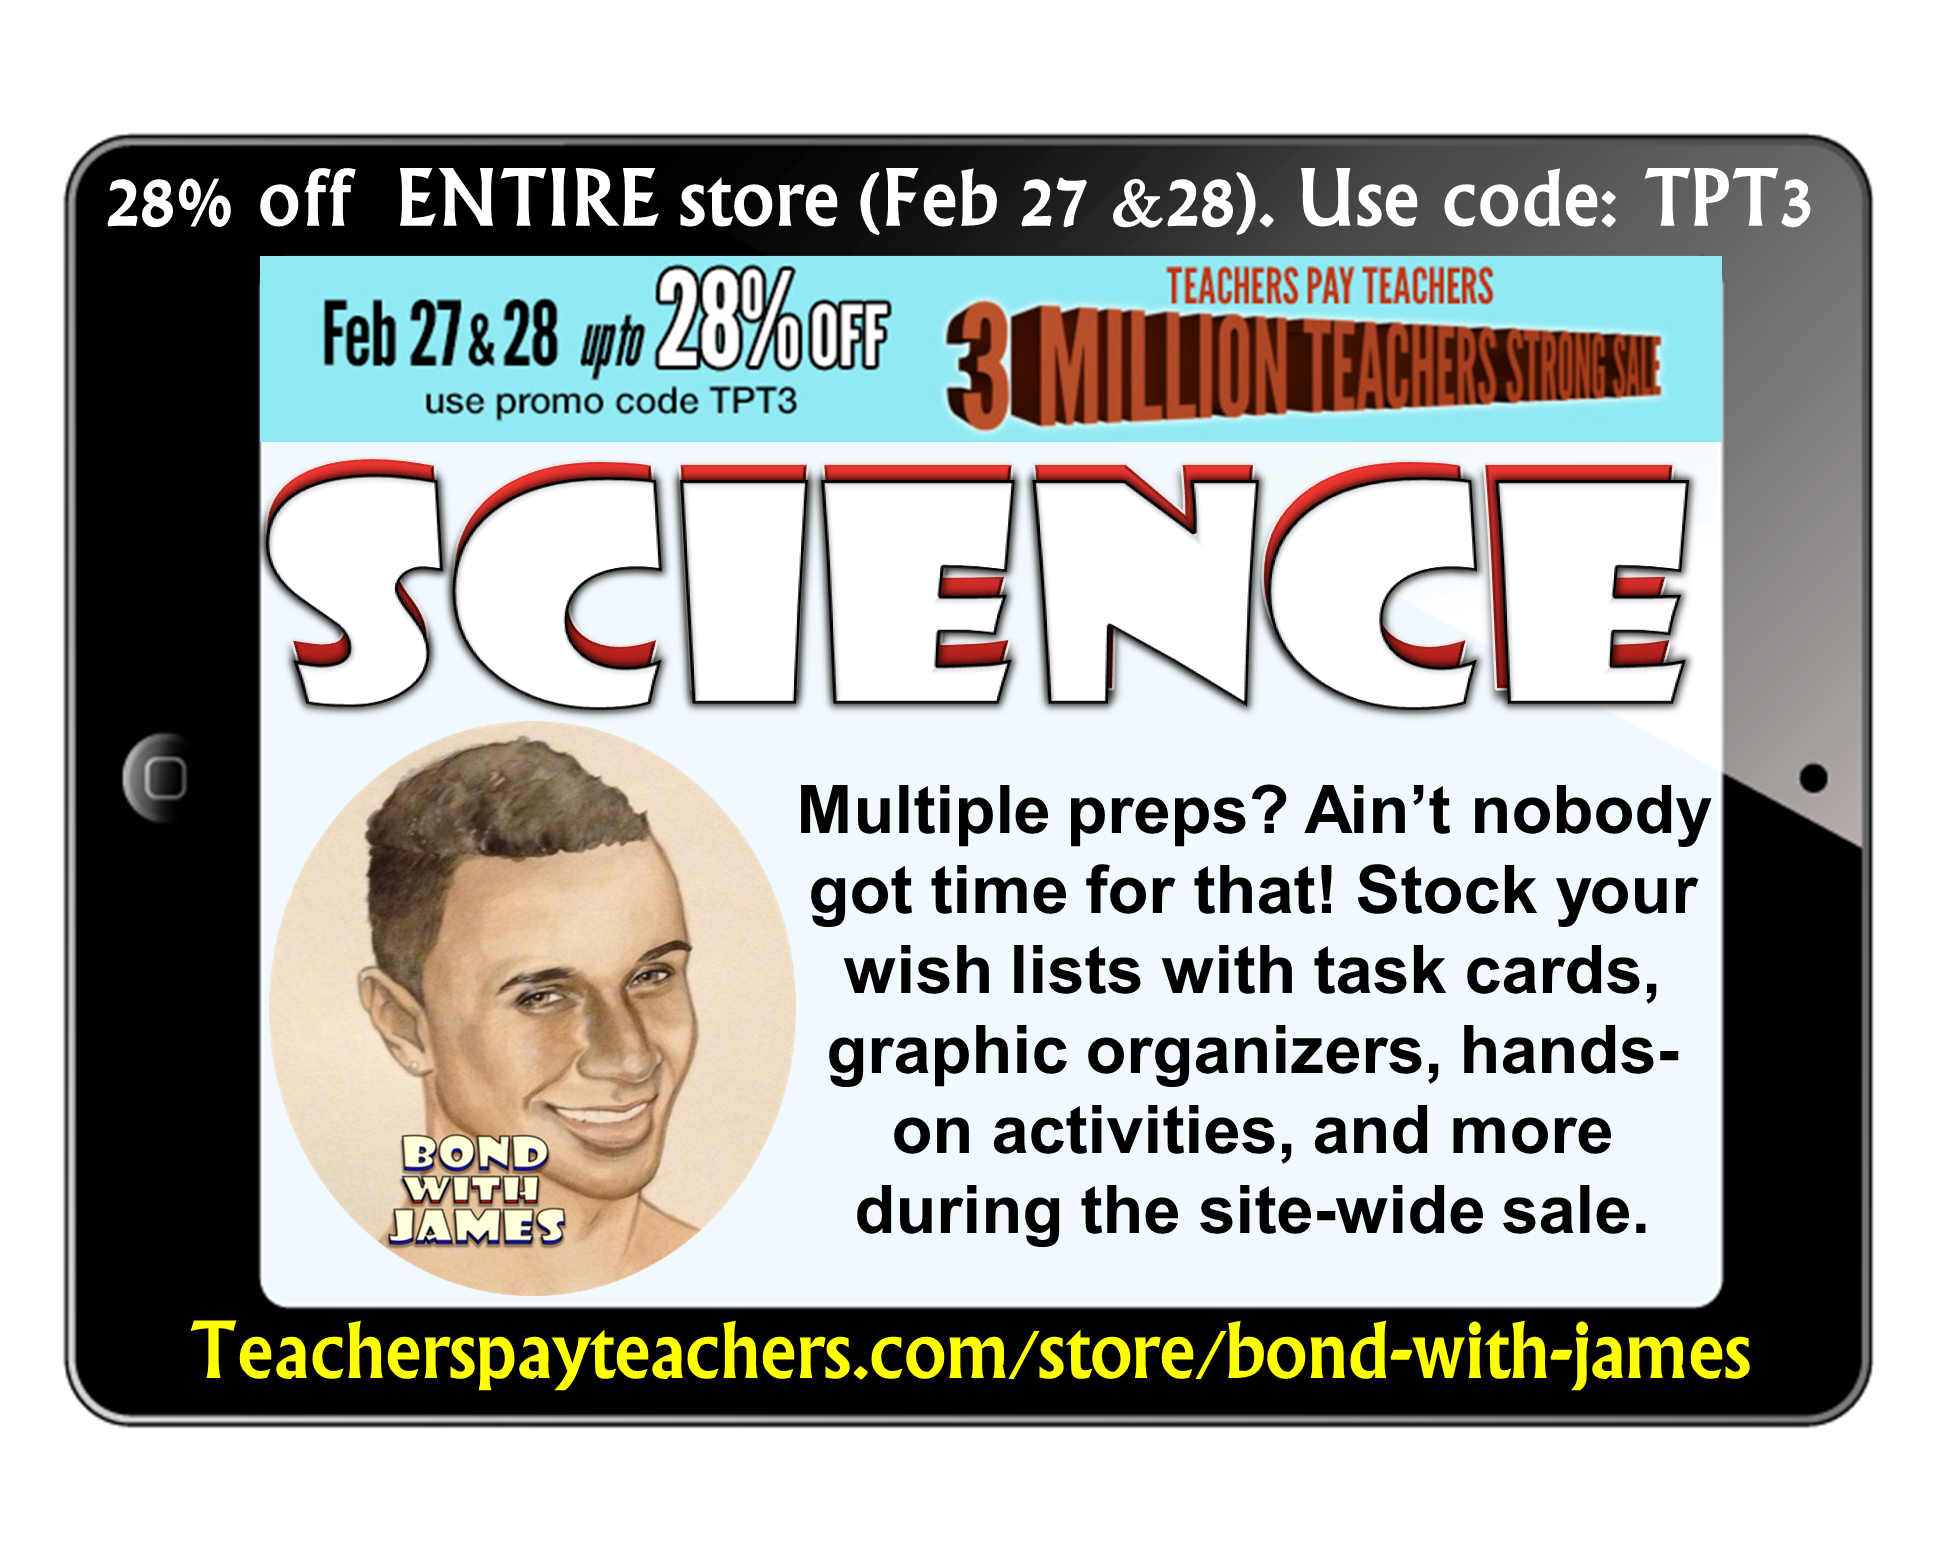 Get that wish list ready! Stock up on your supply of secondary science materials. My entire store will be 28% off during 2/27/14-2/28/14.